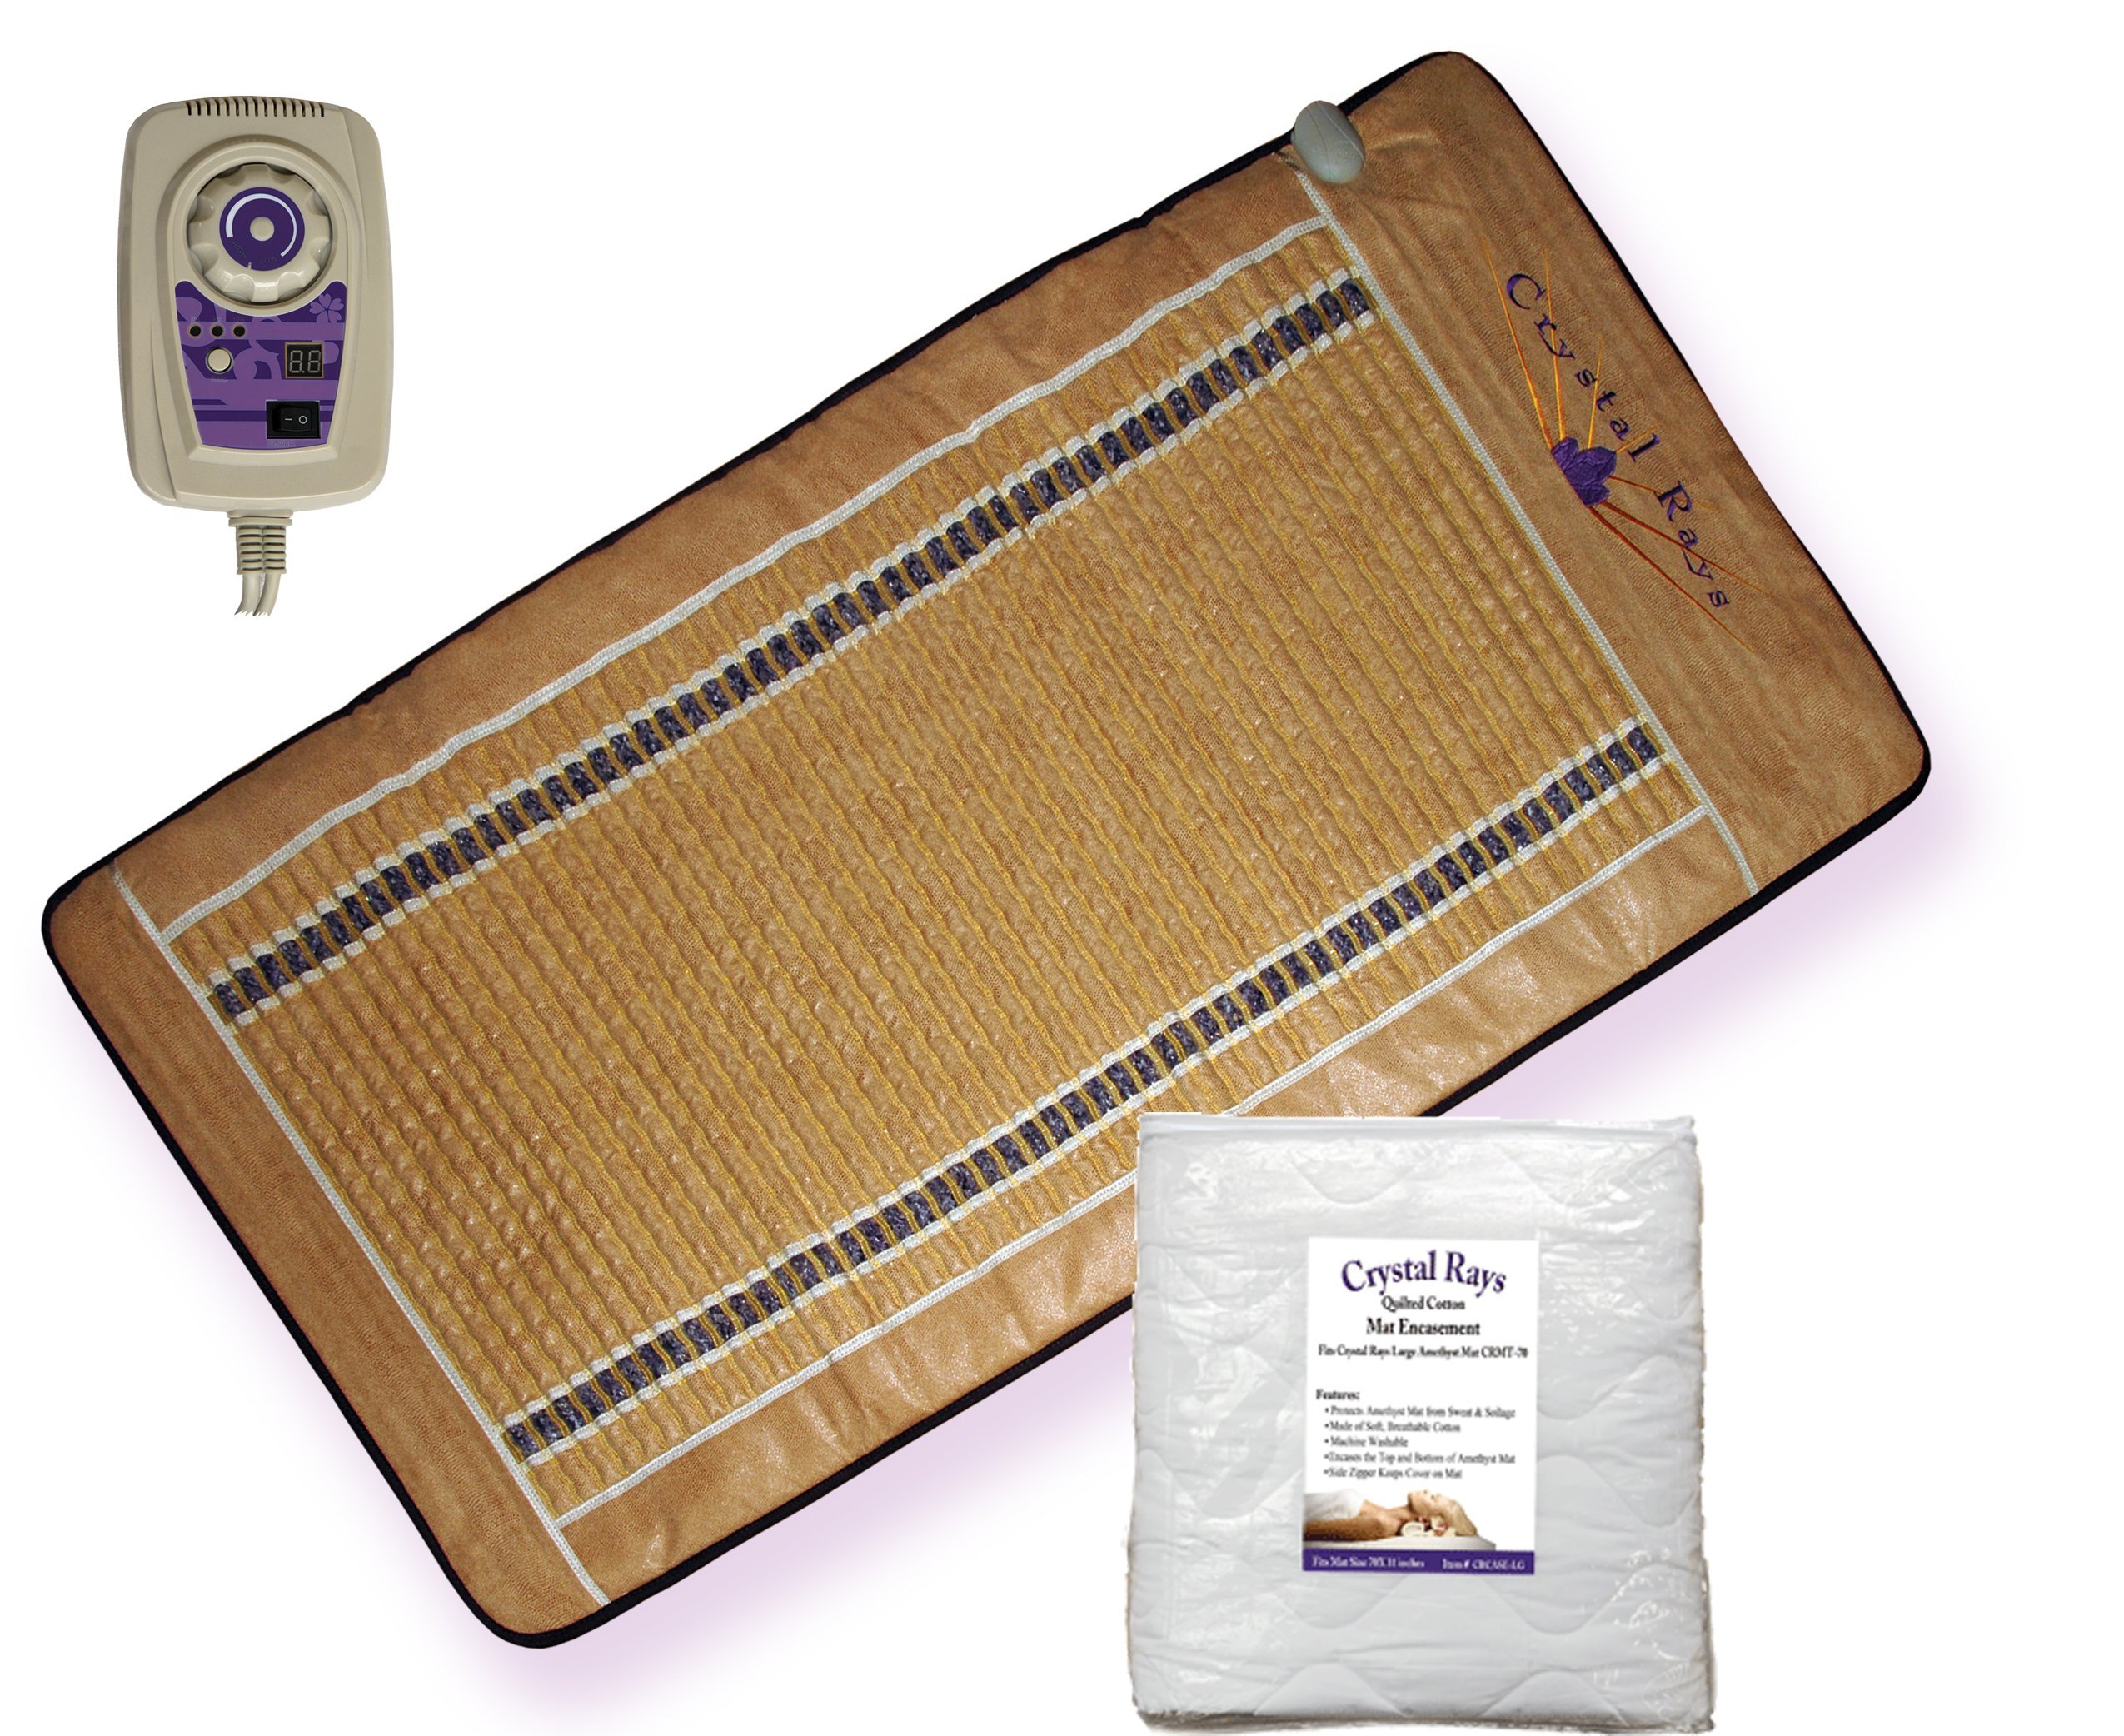 Portable Dry-Sauna. Amethyst Gemstones Mat; Far Infrared Rays & Neg Ions by Crystal Rays. Washable Cotton Case Included. Large Professional-Size. Full 1 Year Warranty.